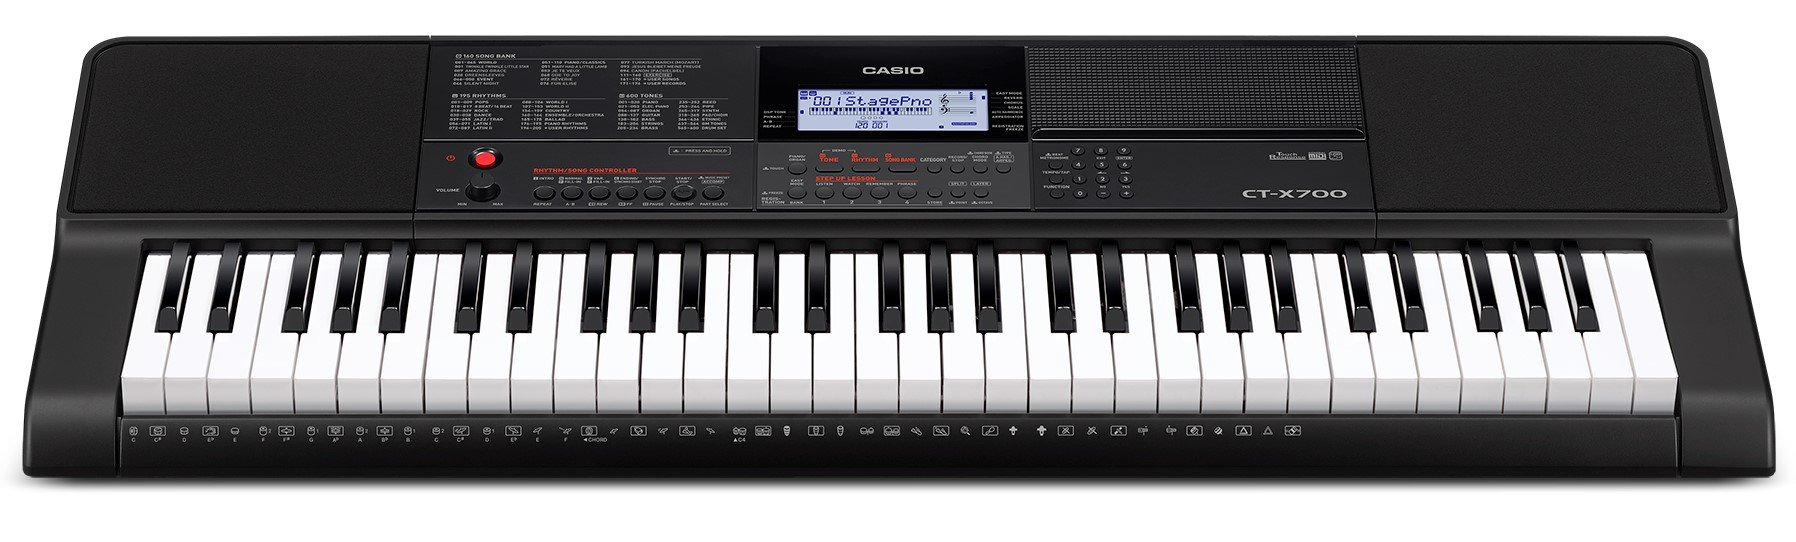 Casio CT-X700 Portable Keyboard Bundle with Stand, Bench, Sustain Pedal, Power Adapter, Austin Bazaar Instructional DVD, and Polishing Cloth by Casio (Image #3)